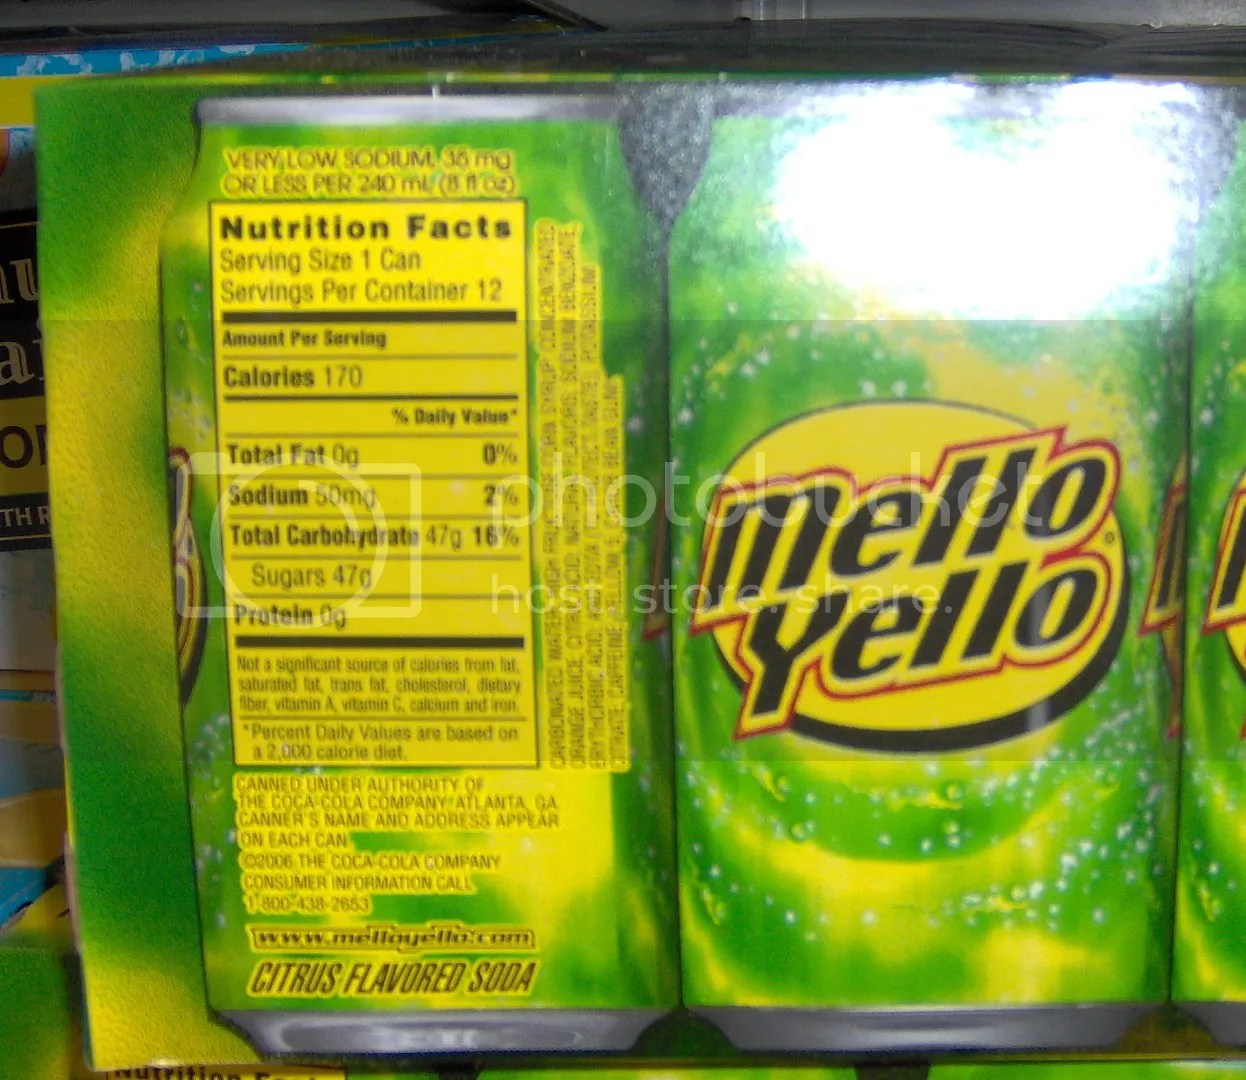 Mello Yello soda pic